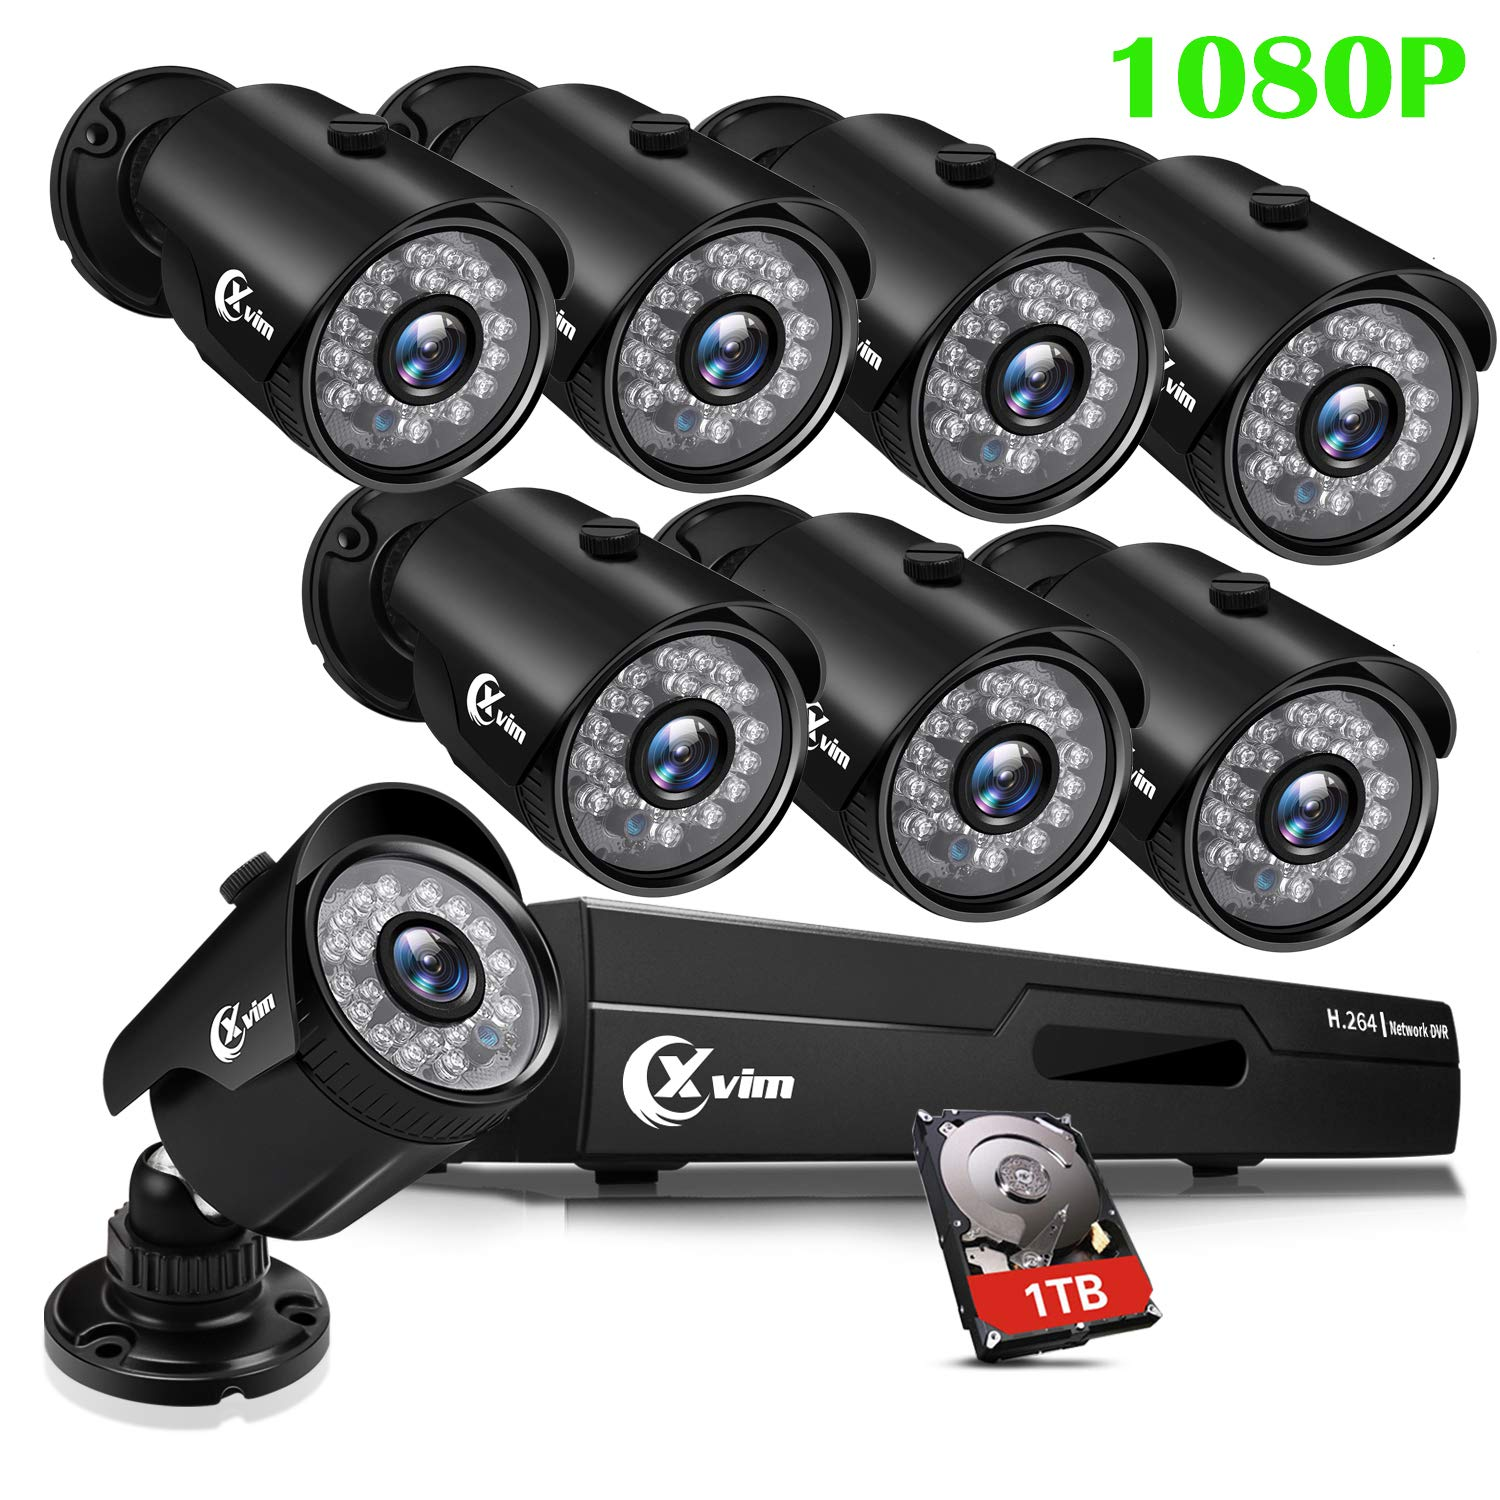 XVIM 8CH 1080P Security Camera System Outdoor with 1TB Hard Drive Pre-Install CCTV Recorder 8pcs HD 1920TVL Upgrade Outdoor Home Surveillance Cameras with Night Vision Easy Remote Access Motion Alert by X-VIM (Image #1)